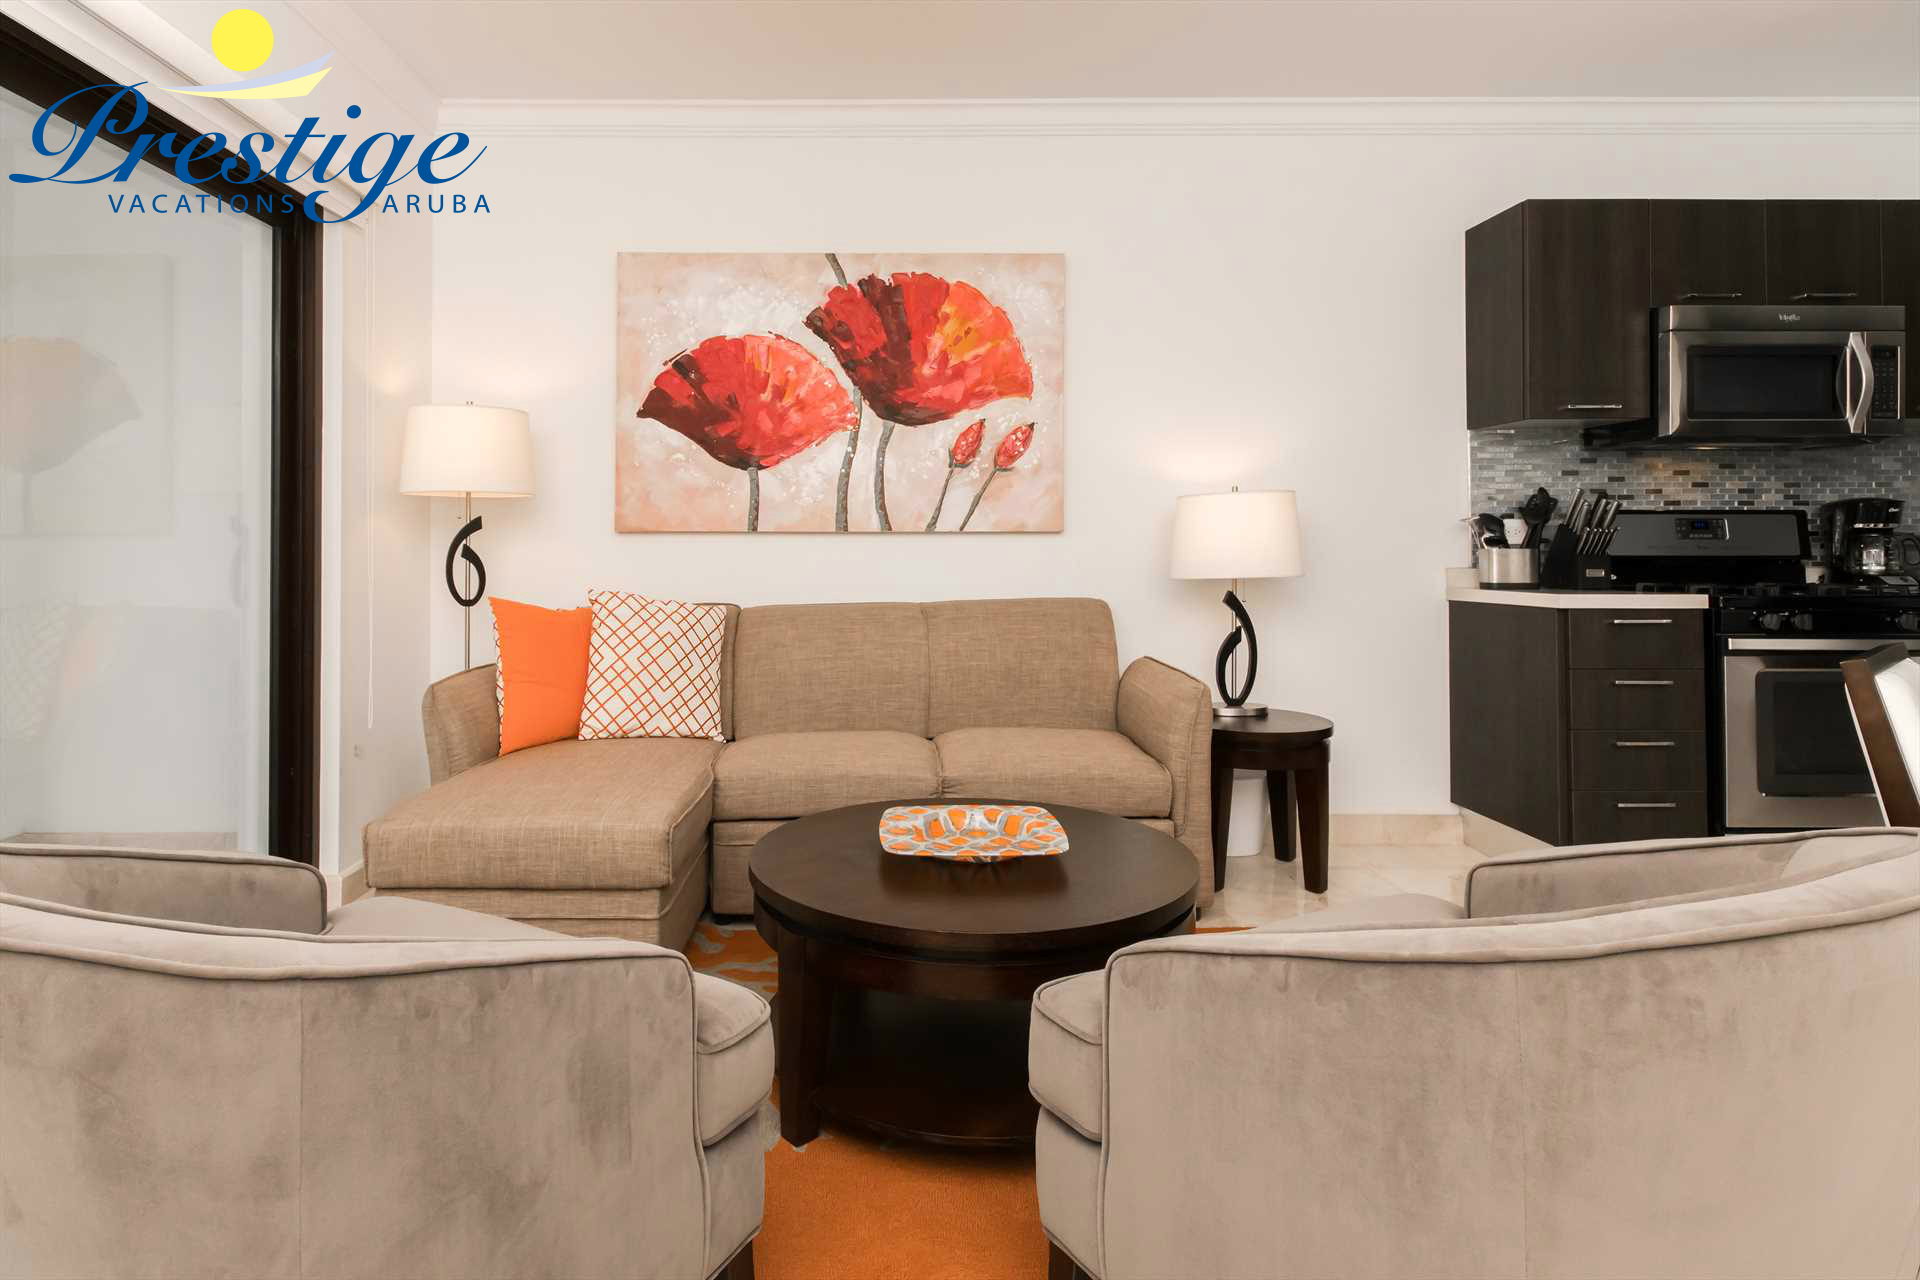 This cozy condo with vivid colors is the perfect setting for your next Aruba vacation